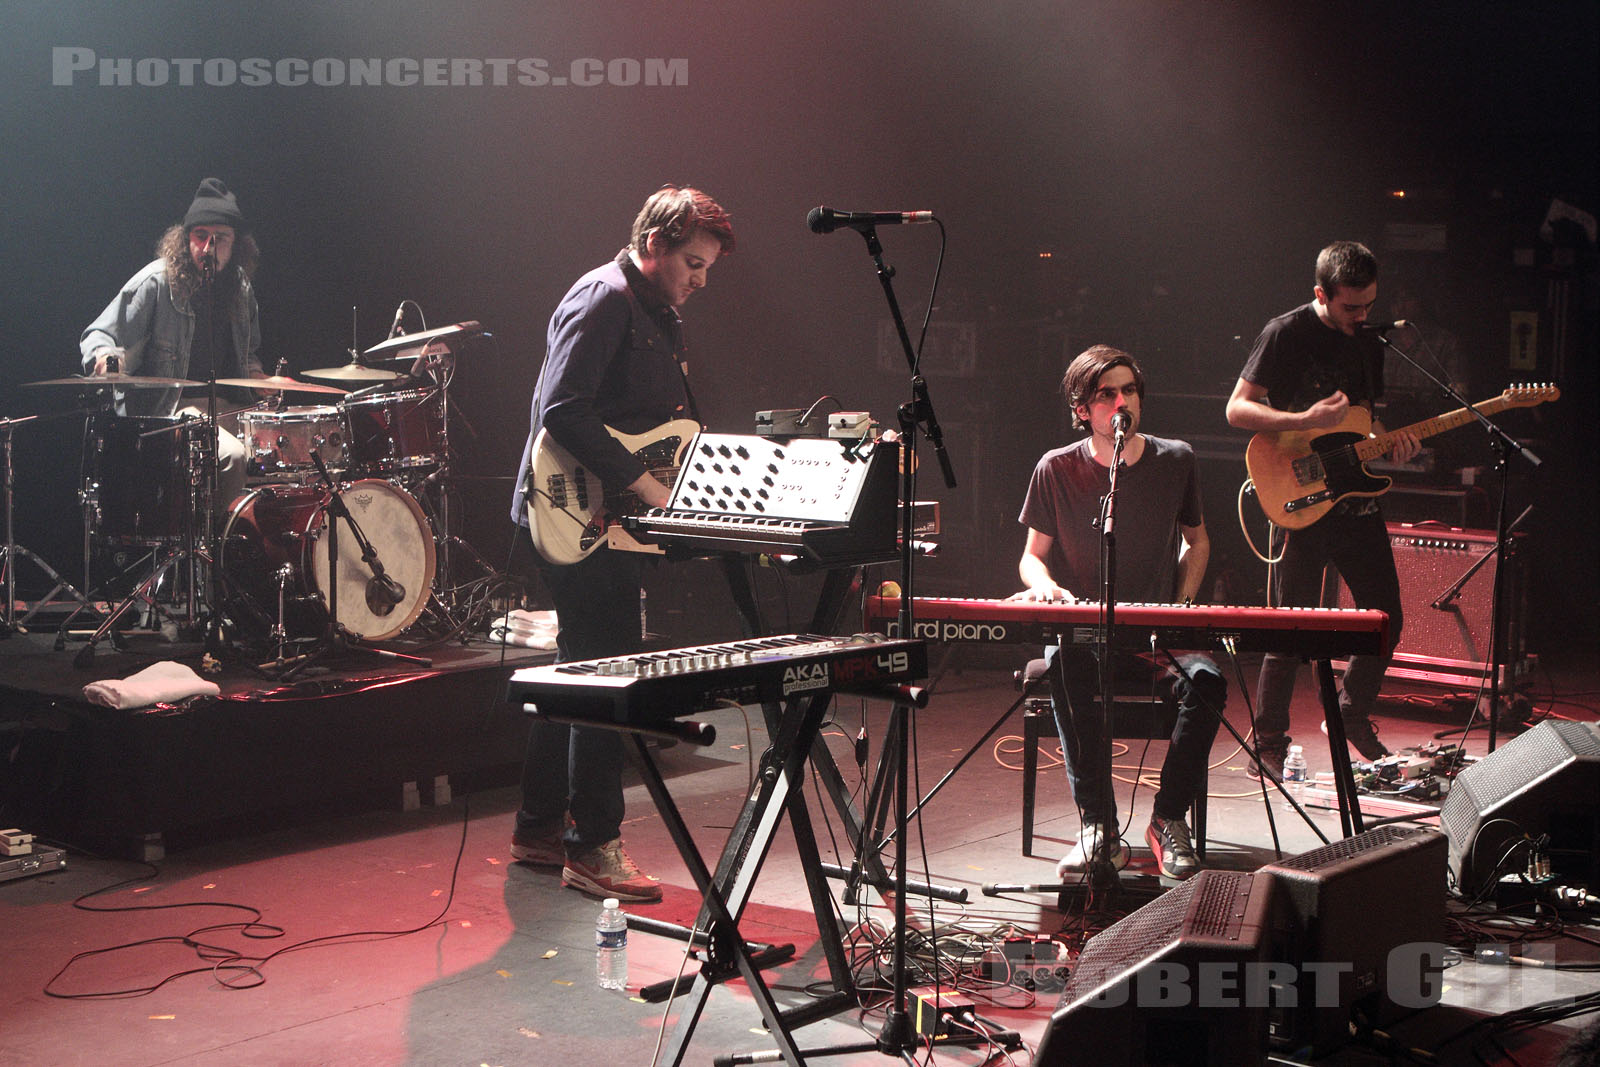 GRIEFJOY - 2013-10-10 - PARIS - La Cigale